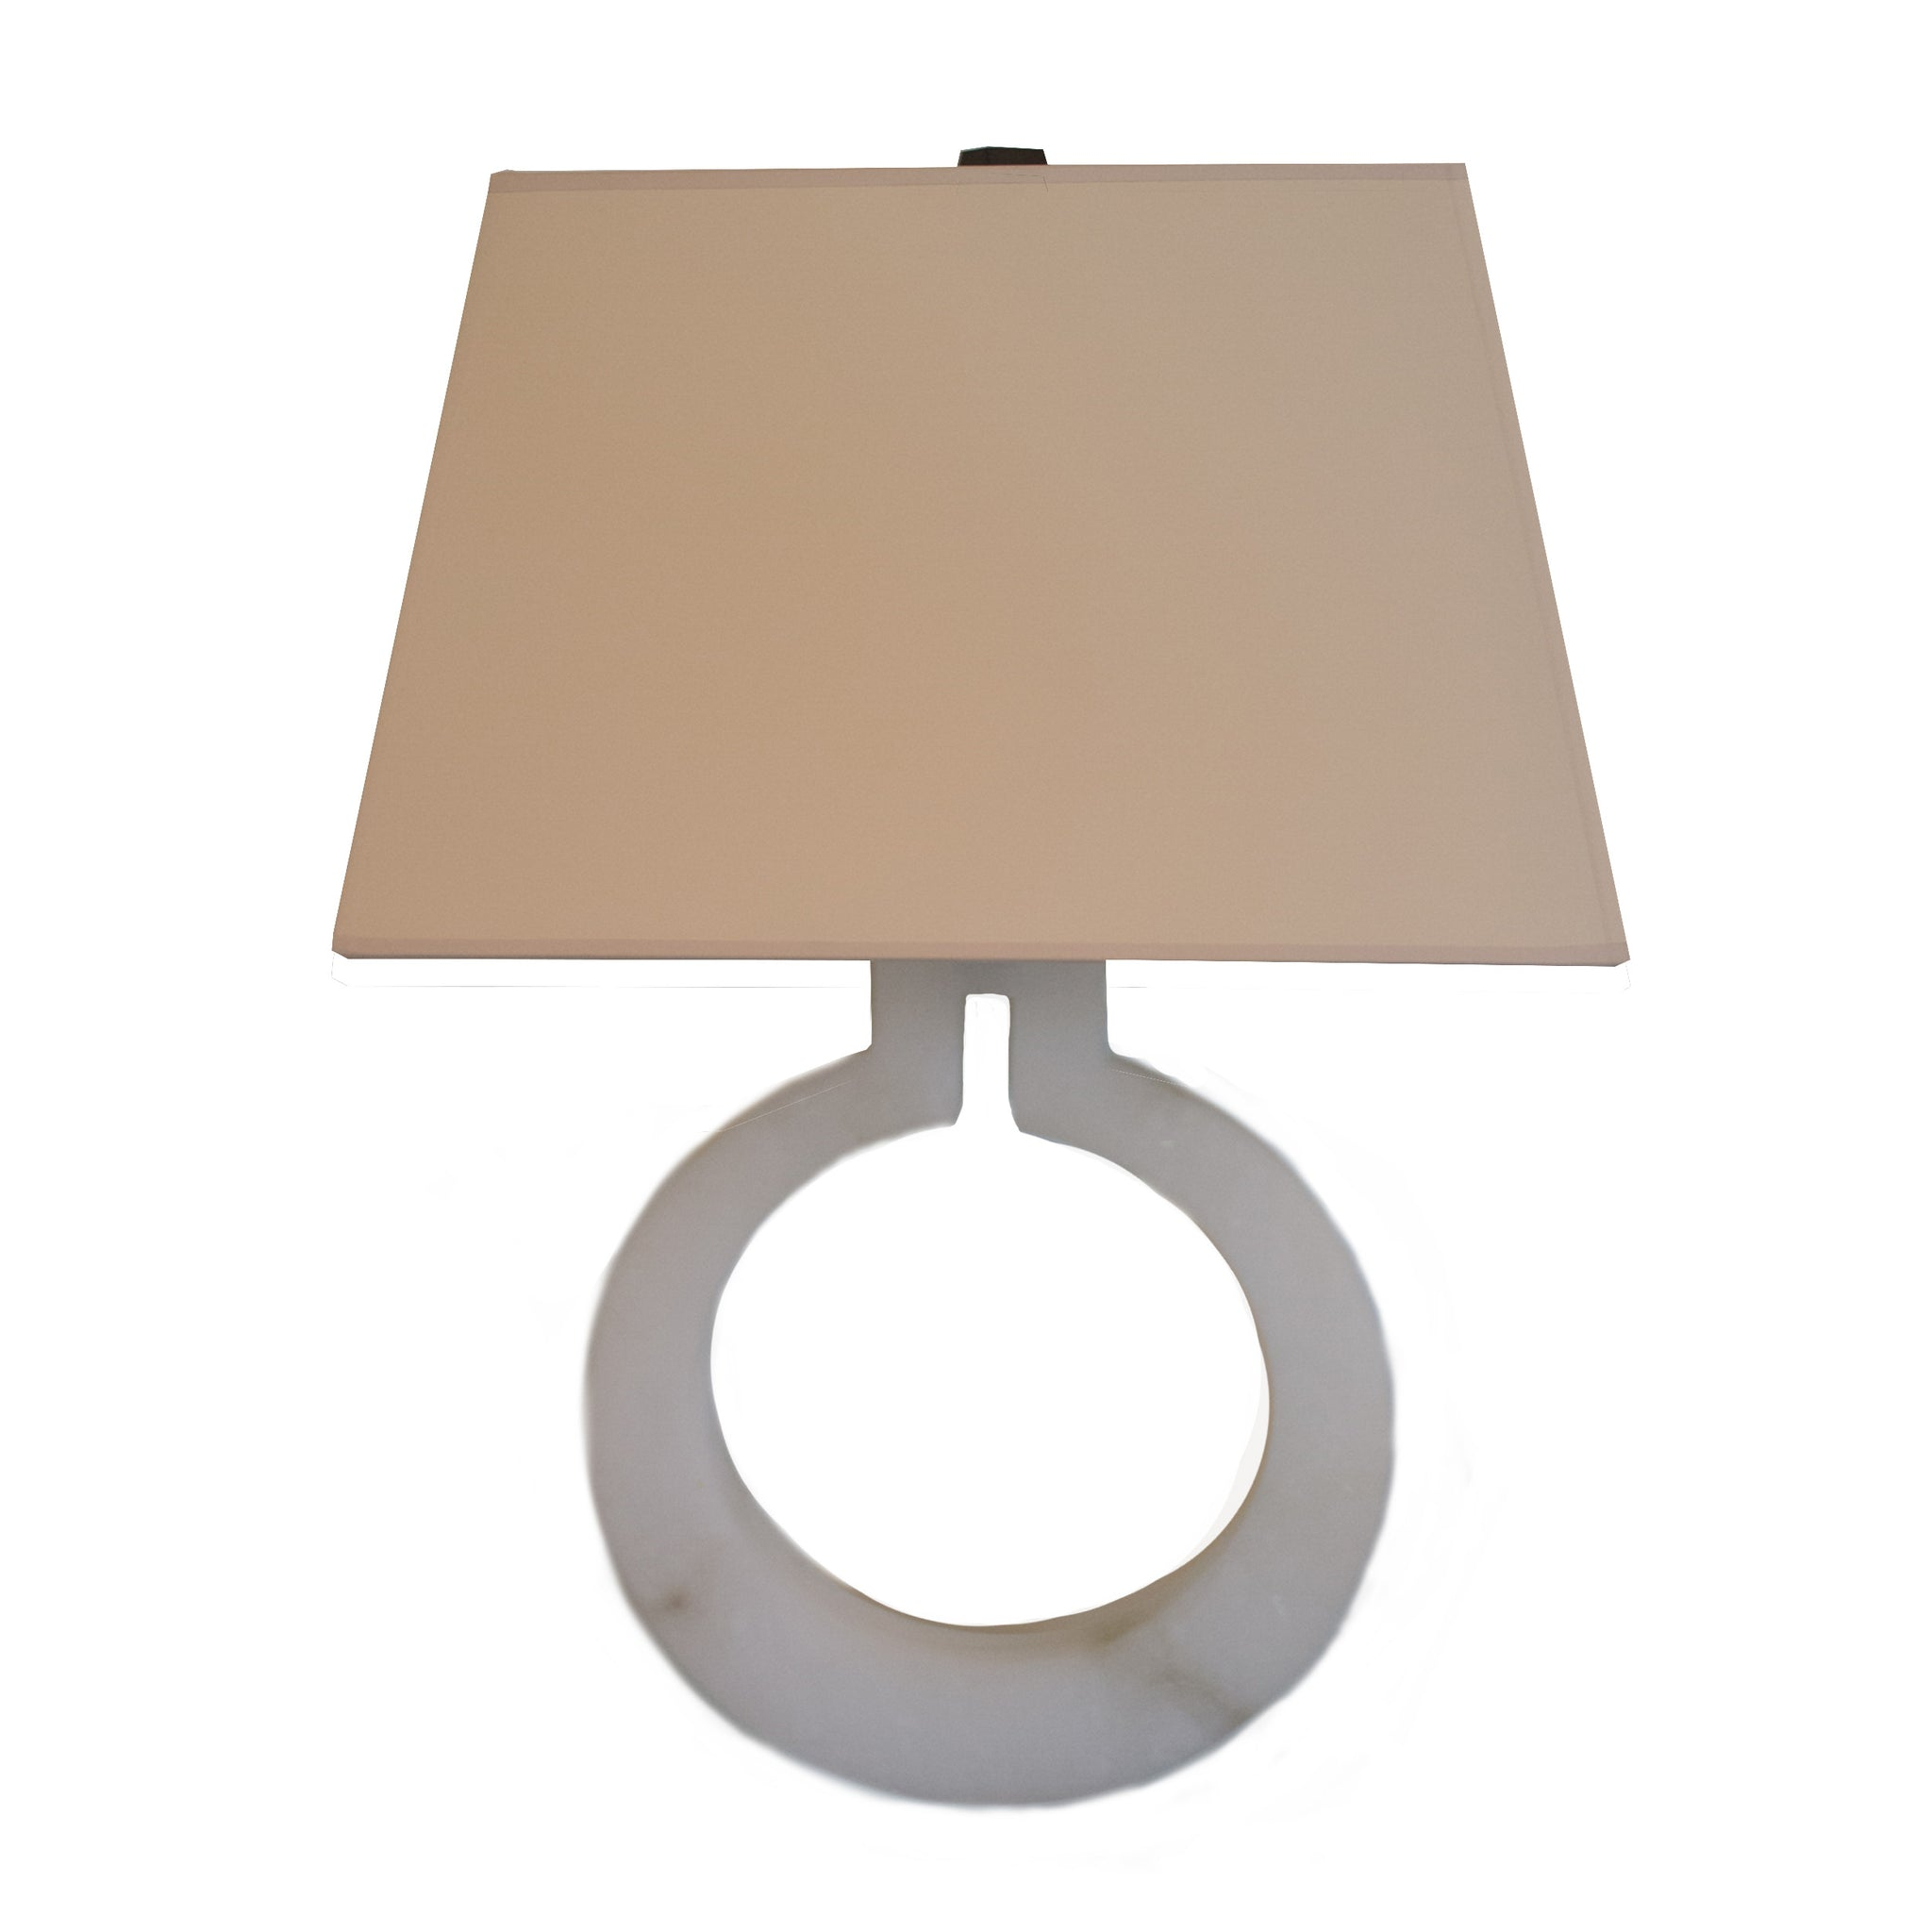 Ring Form Large Wall Sconce in Alabaster with Natural Paper Shade